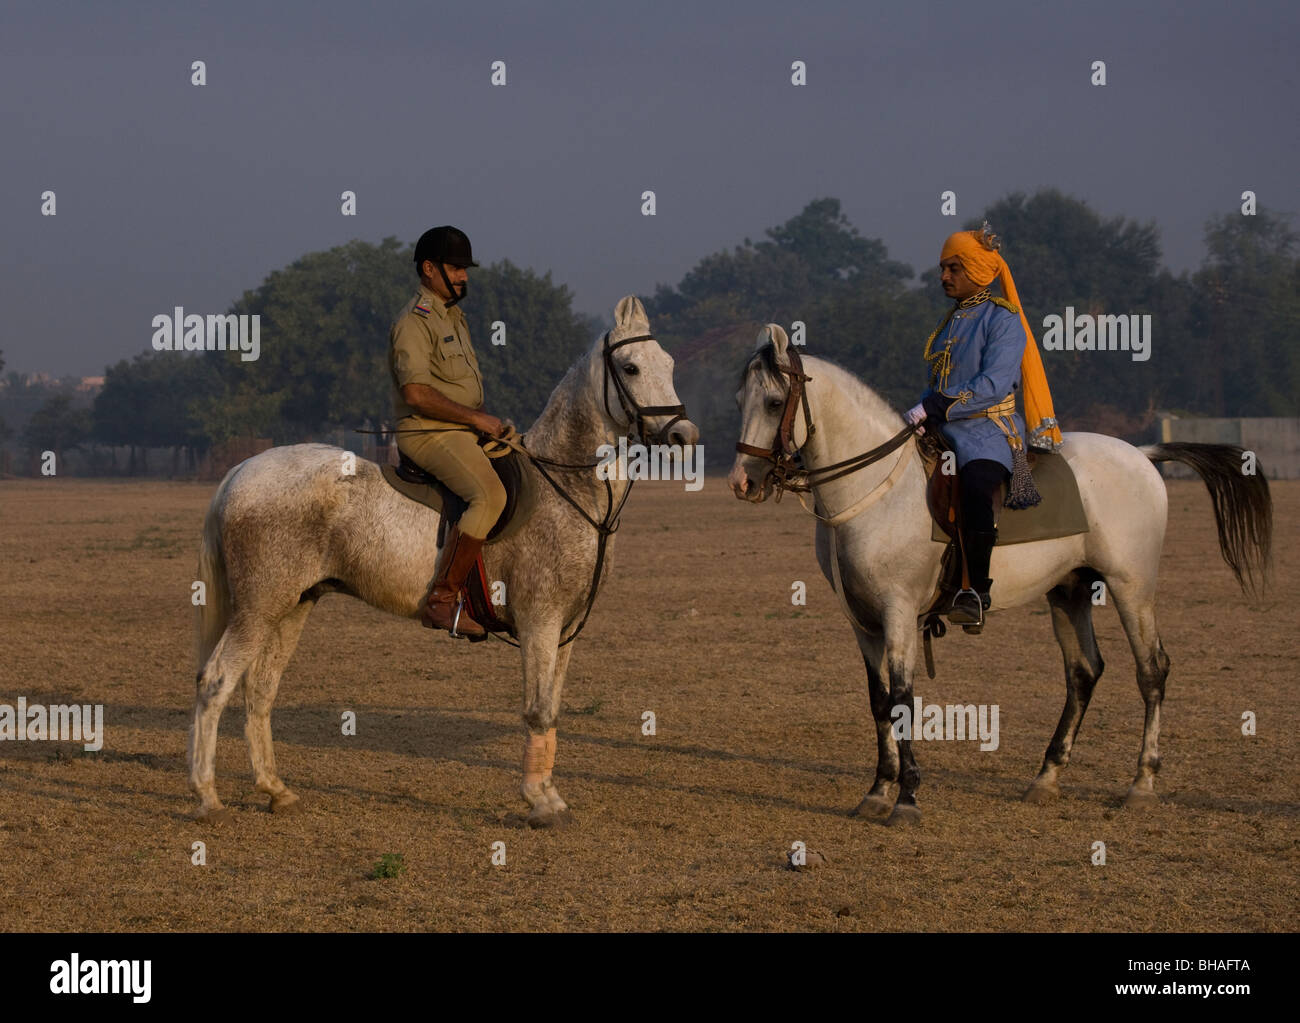 Police Horse Costume Tradition India Force Gujarat Stock Photo Alamy